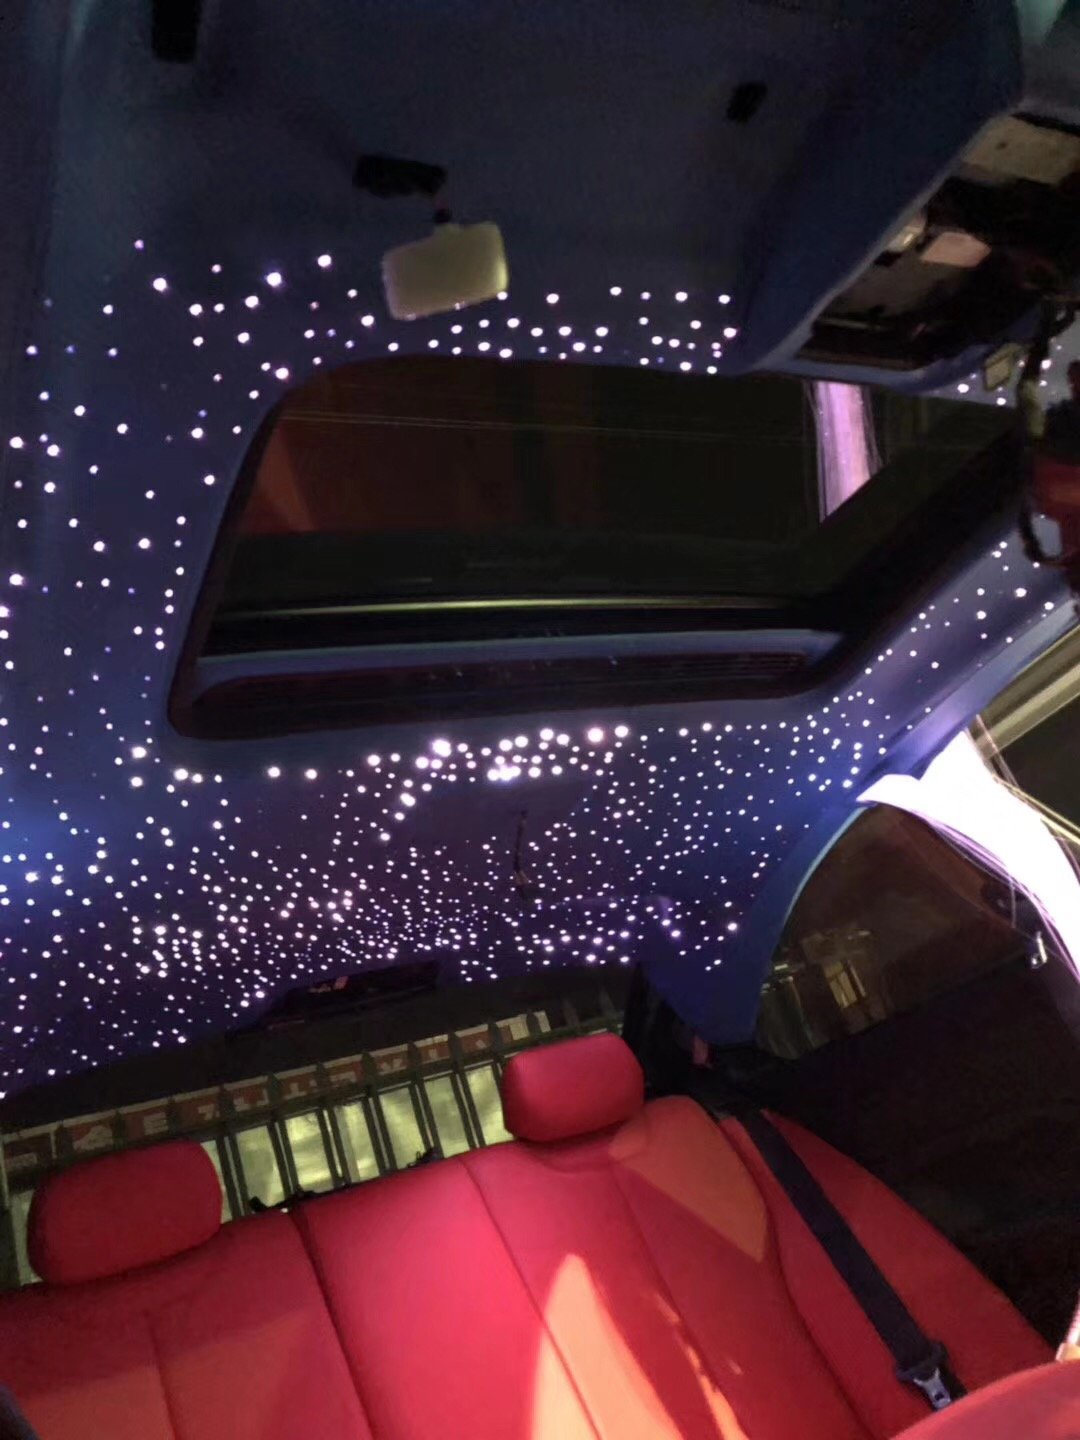 10W Car Use Fiber Optic Light Star Ceiling Kit Twinkle, LED RGBW Engine Driver with 28key RF Remote Control 0.03in/0.75mm 6.5ft/2m 200 Strands